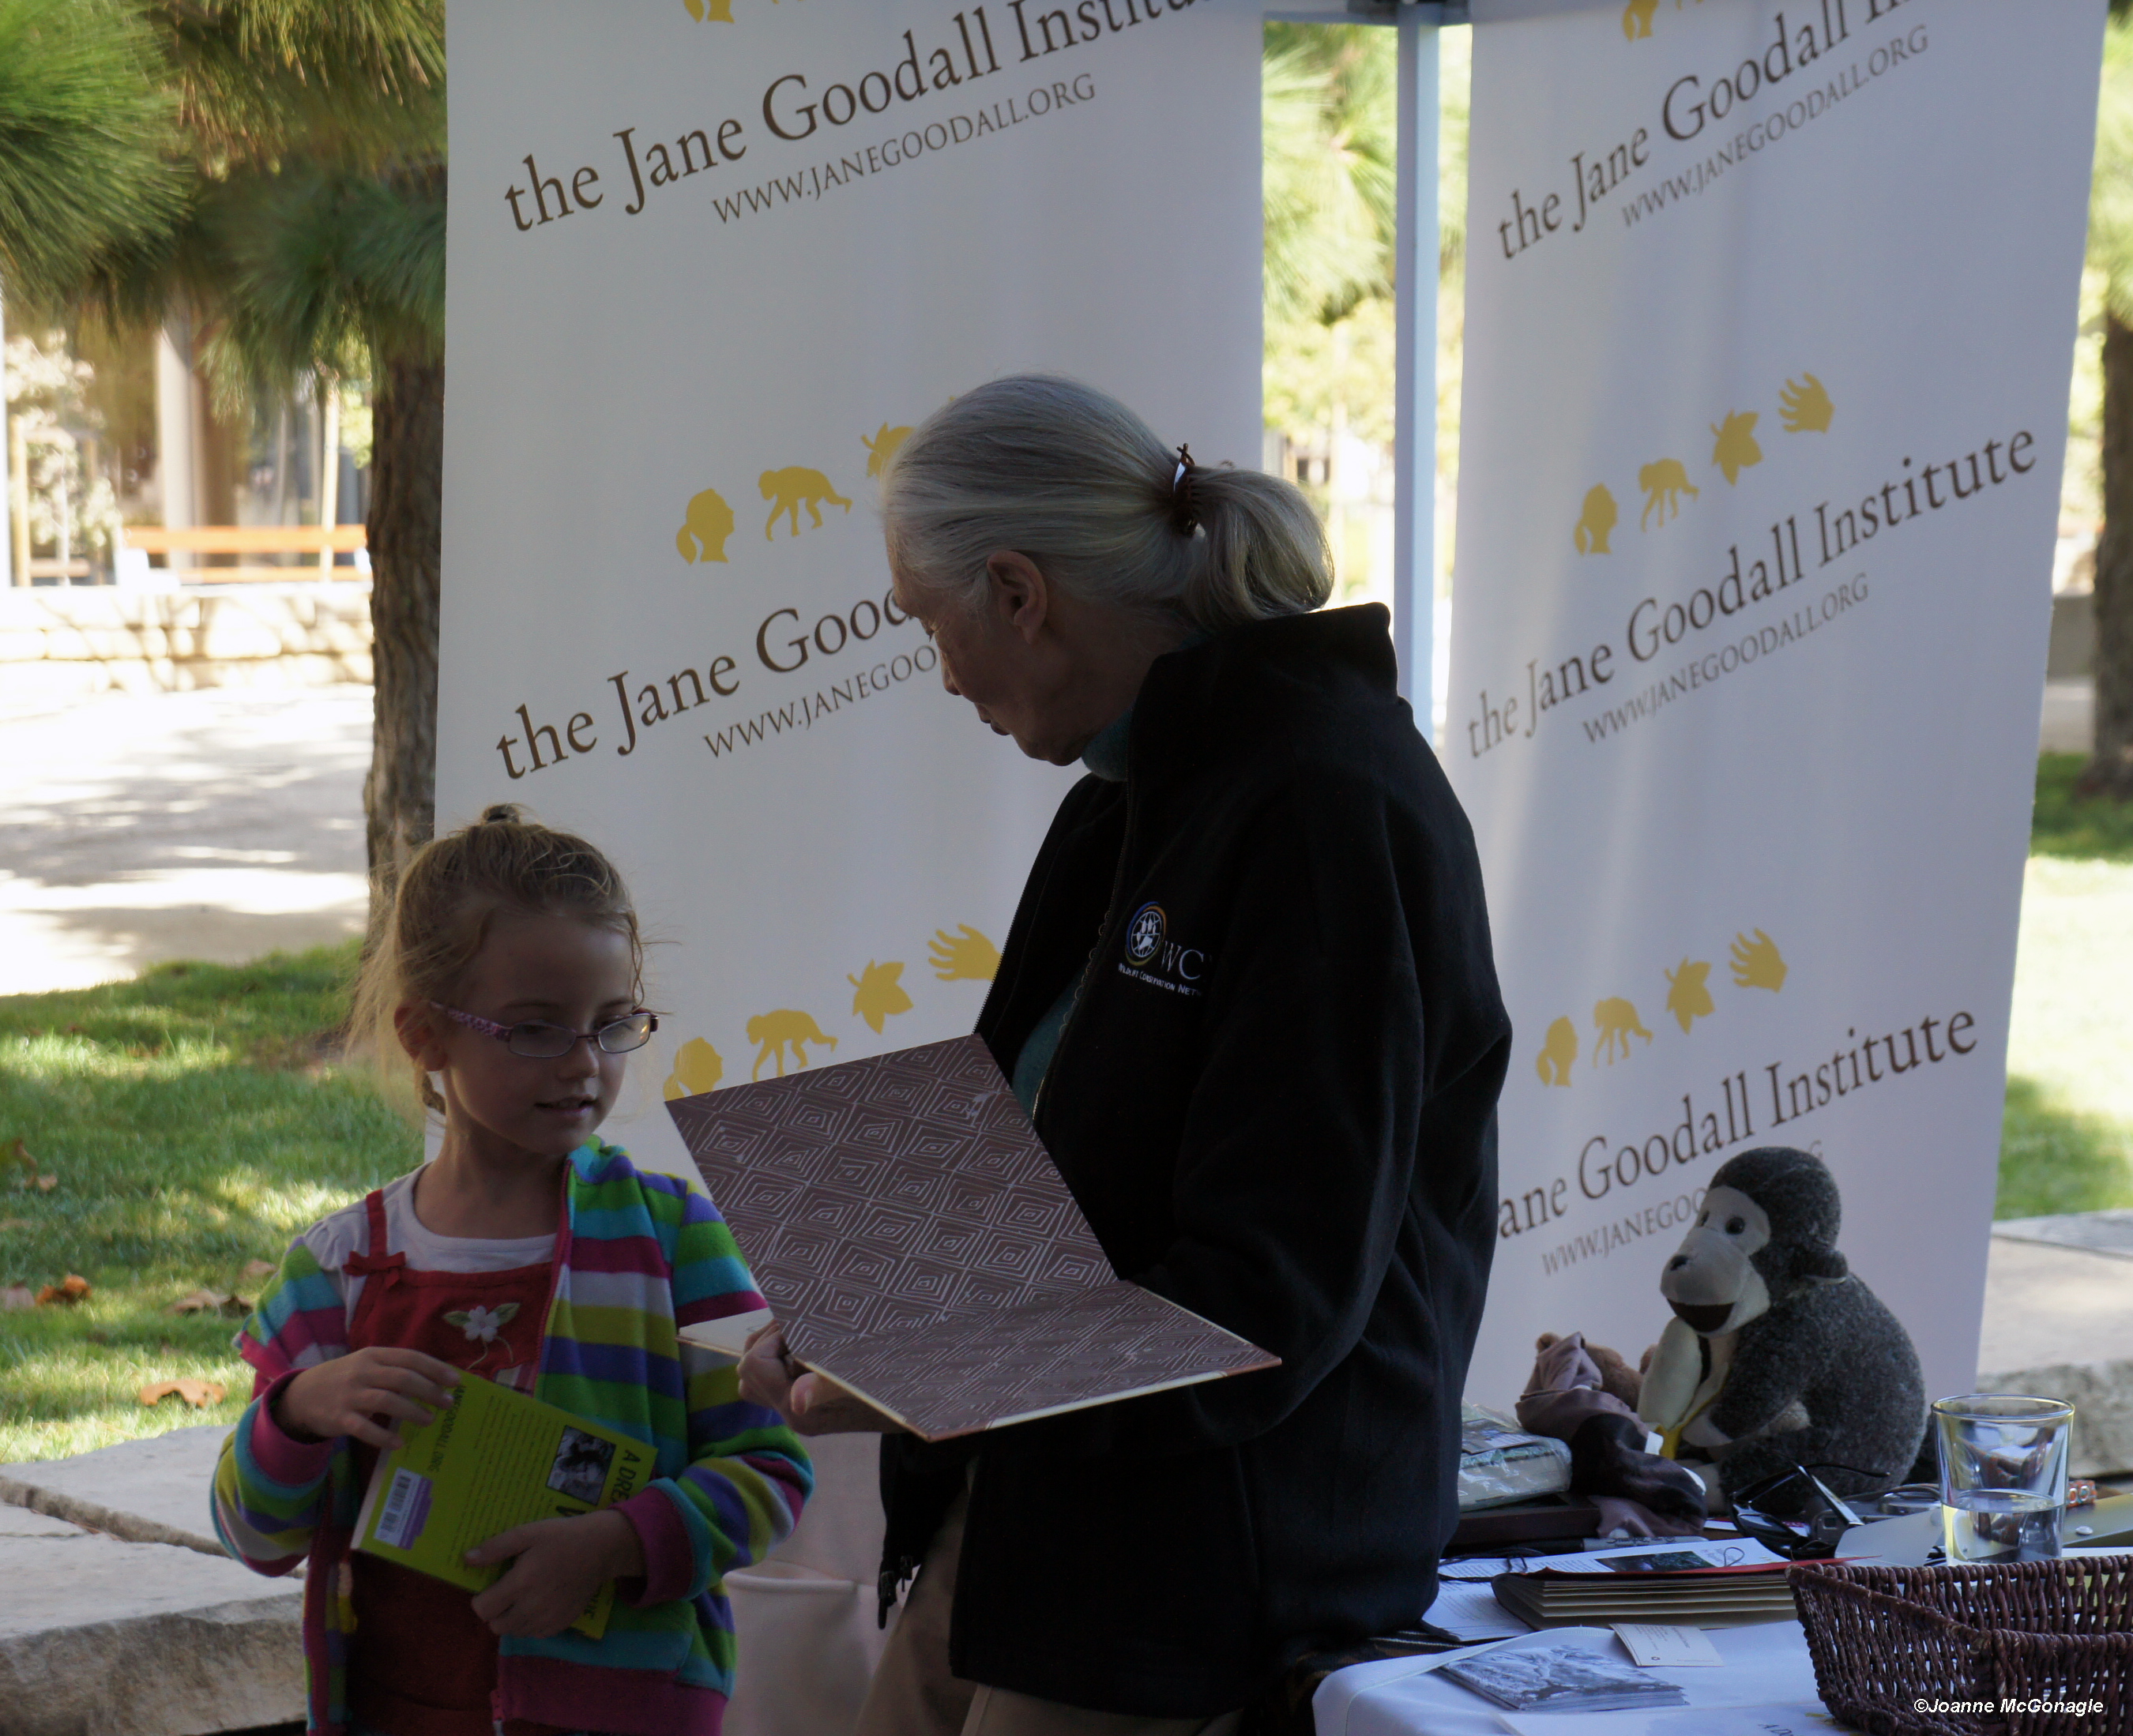 Every Individual Makes a Difference  Jane Goodall's Message